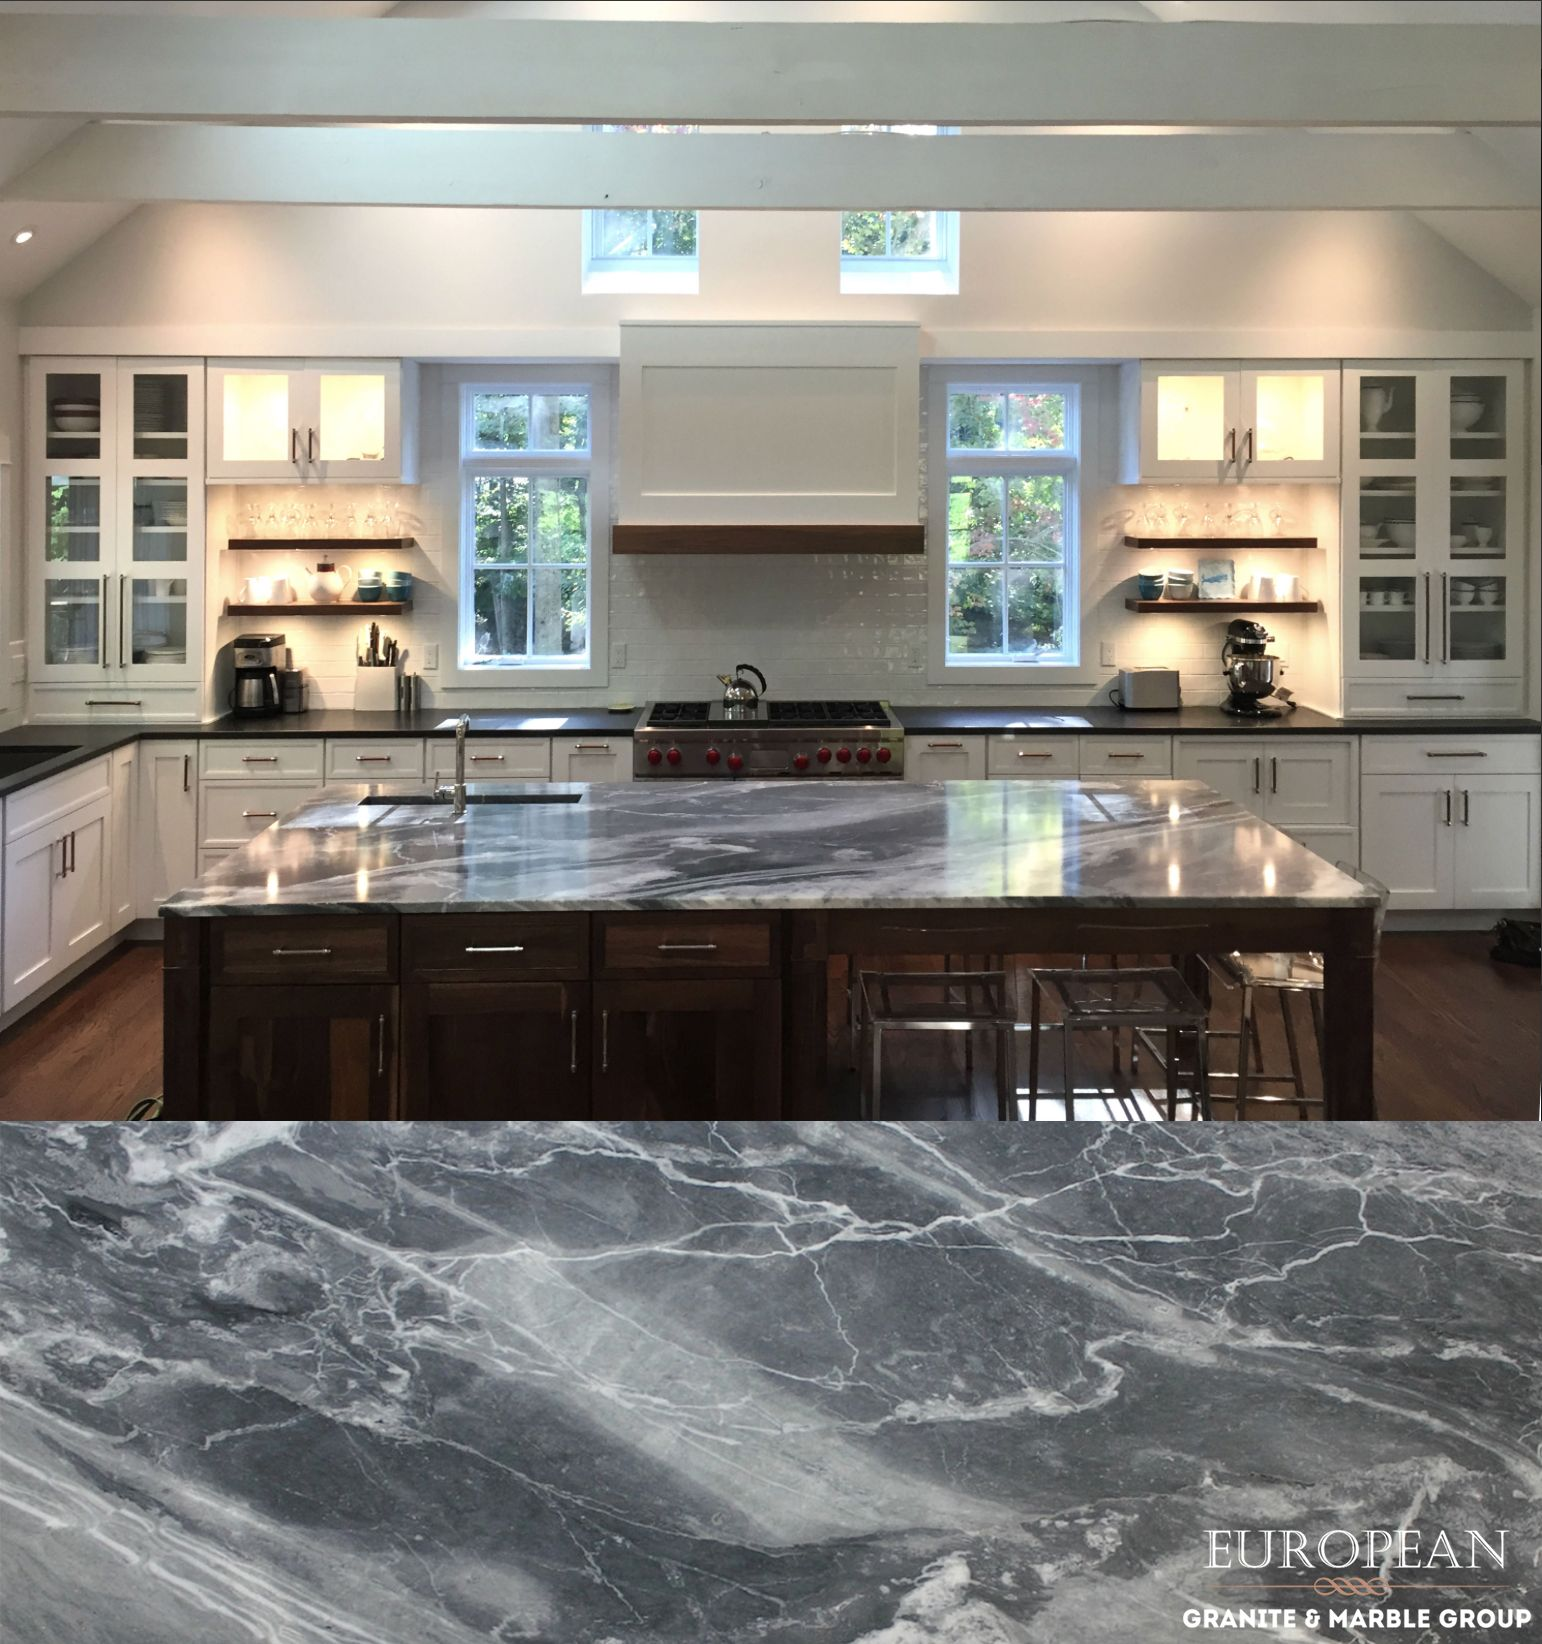 This Stunning Blue De Savoie Marble Countertop Is The Focal